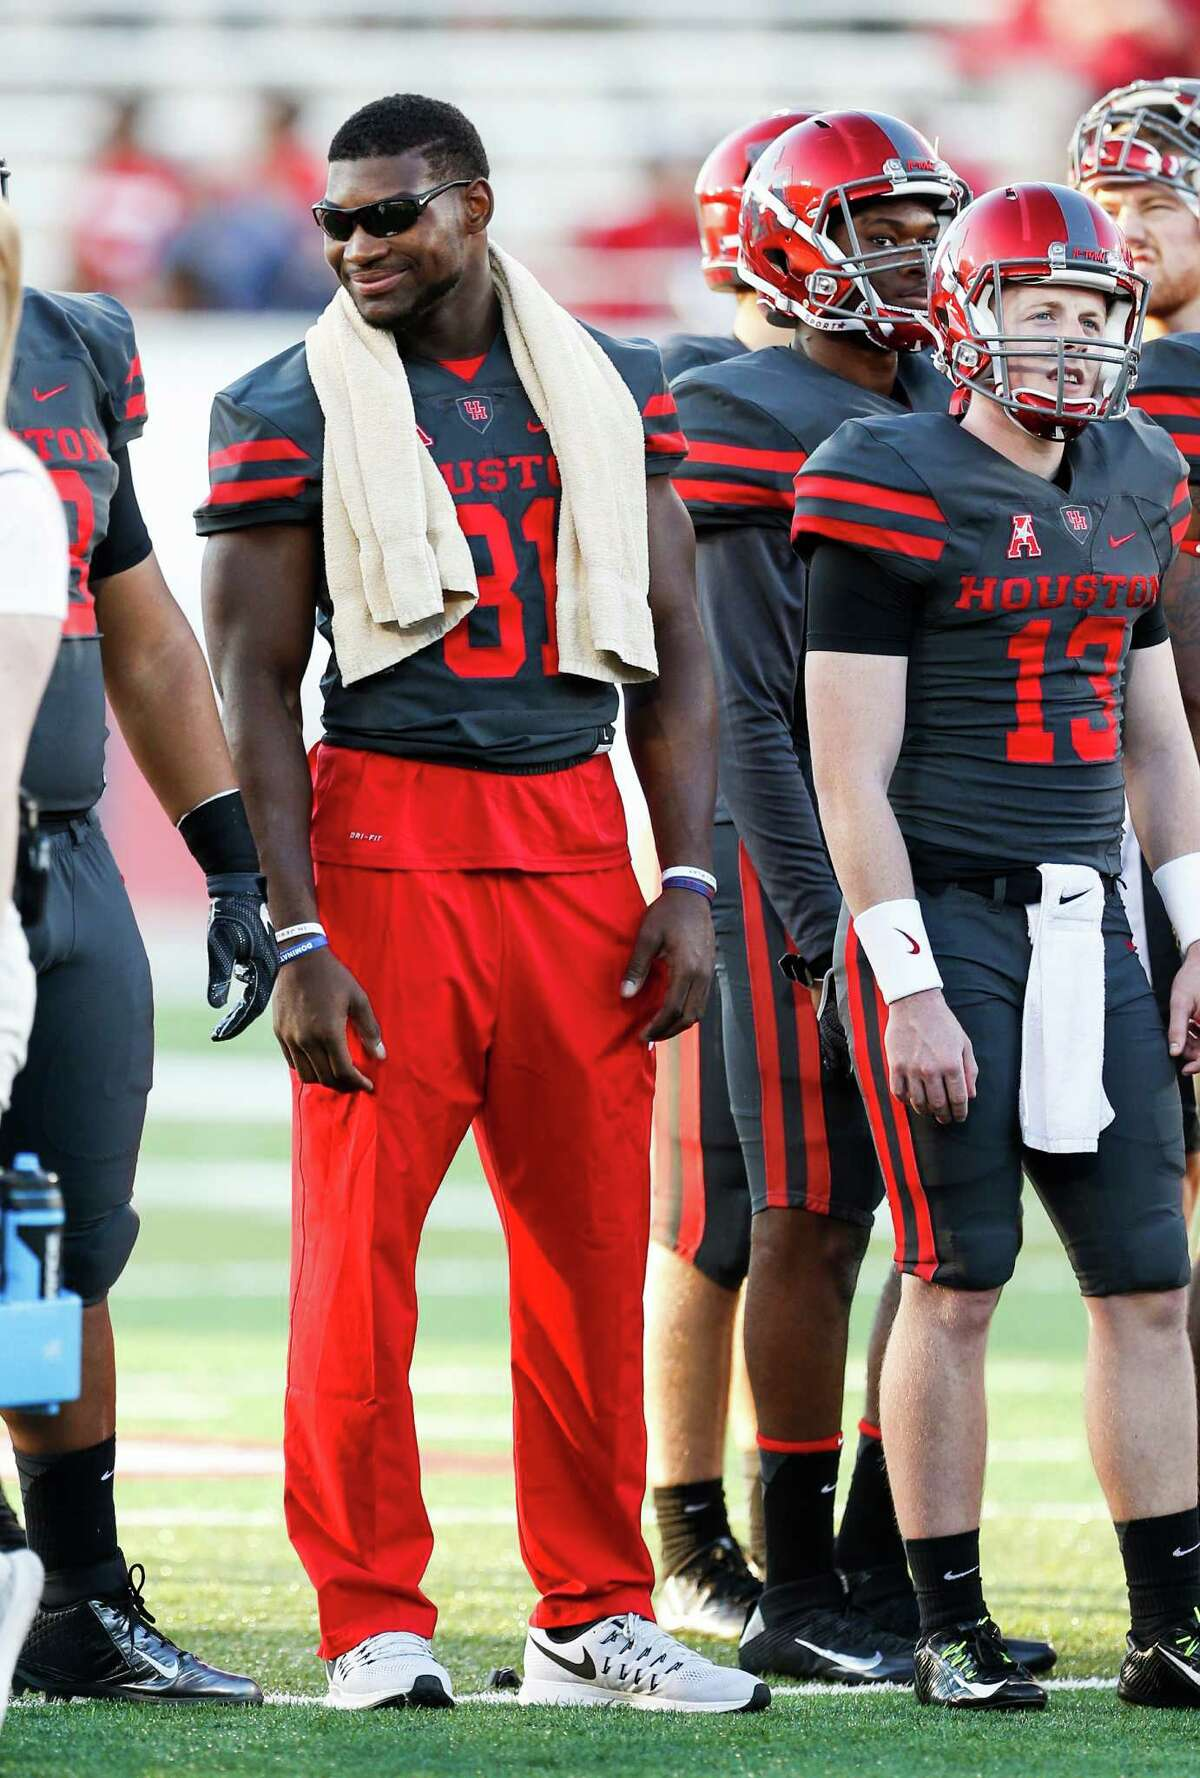 Houston linebacker Tyus Bowser (81) stands on the side out of uniform before an NCAA football game against Connecticut at TDECU Stadium on Thursday, Sept. 29, 2016, in Houston.